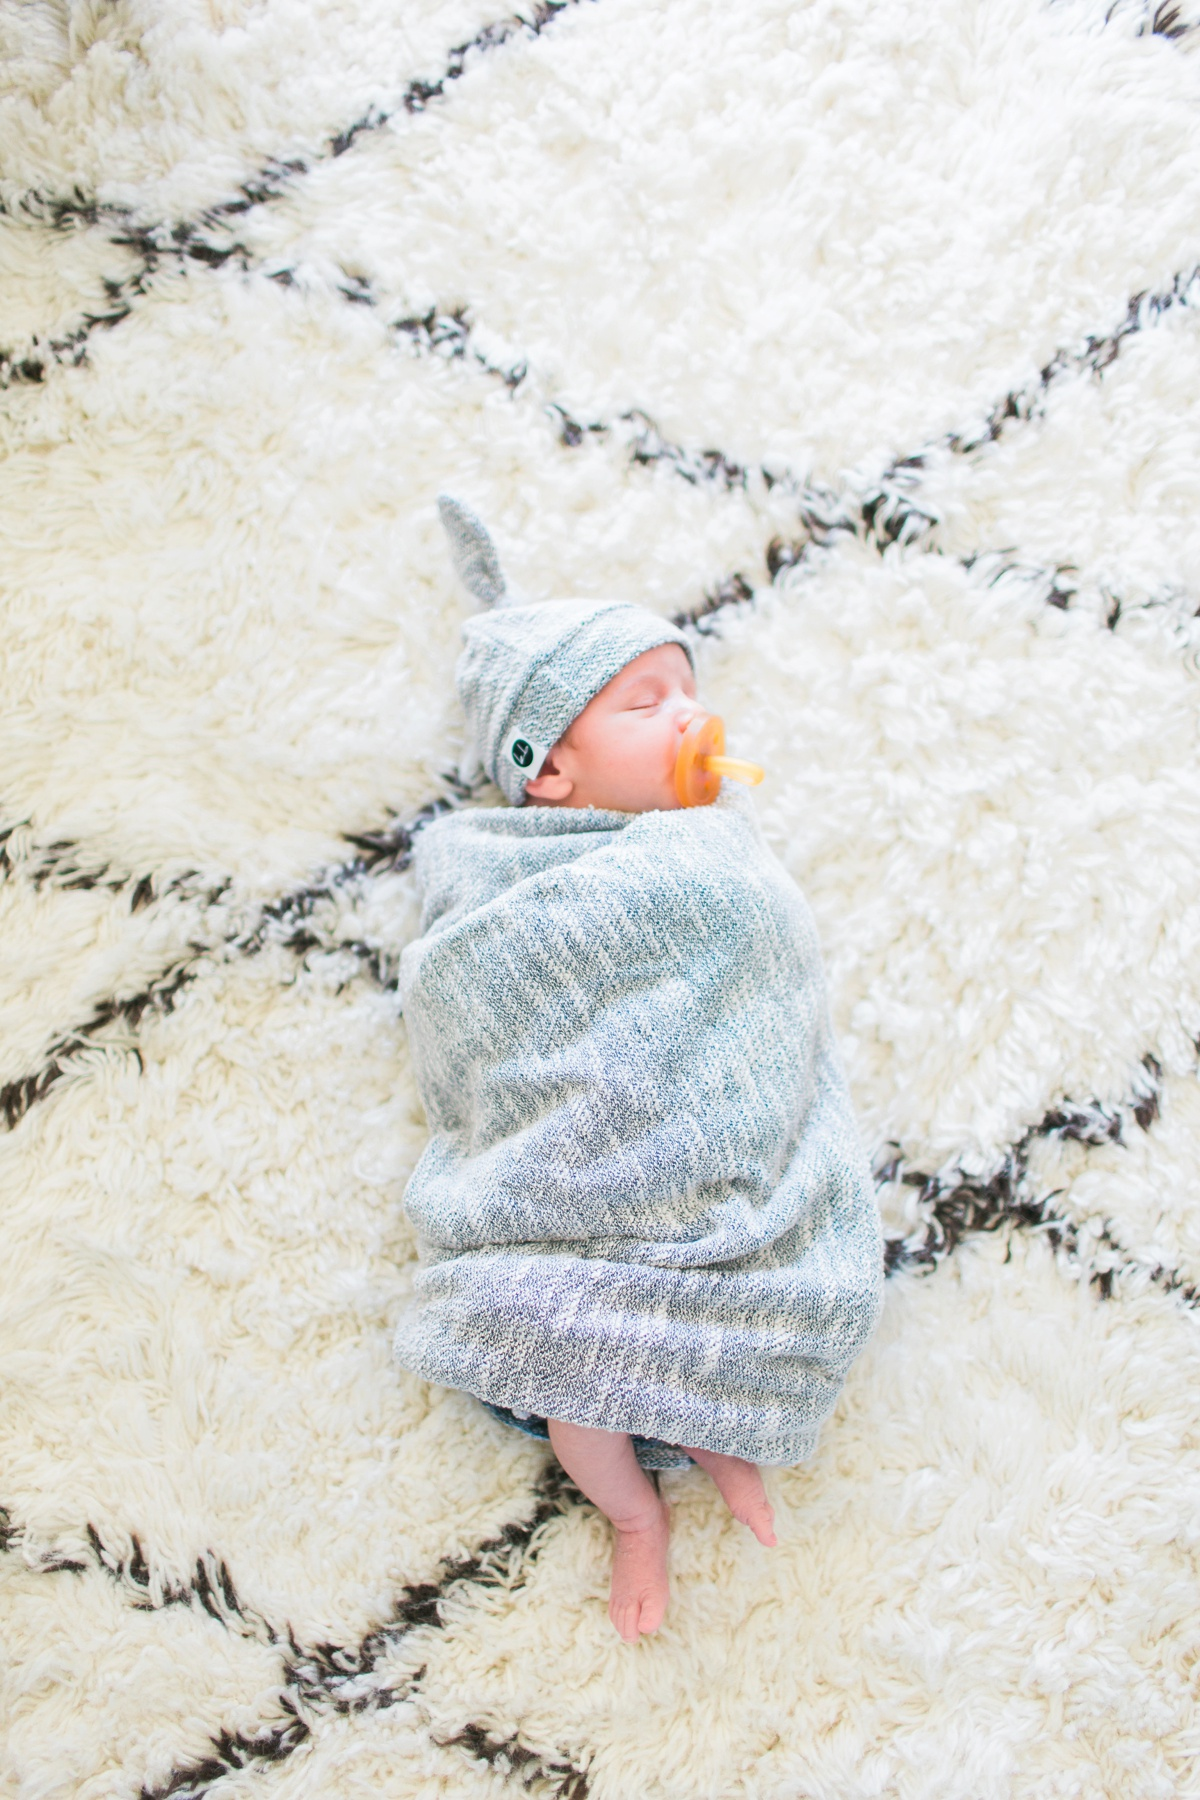 Orange-County-Lifestyle-Newborn-Photography-Kristen-Lynette-Photography_0021.jpg